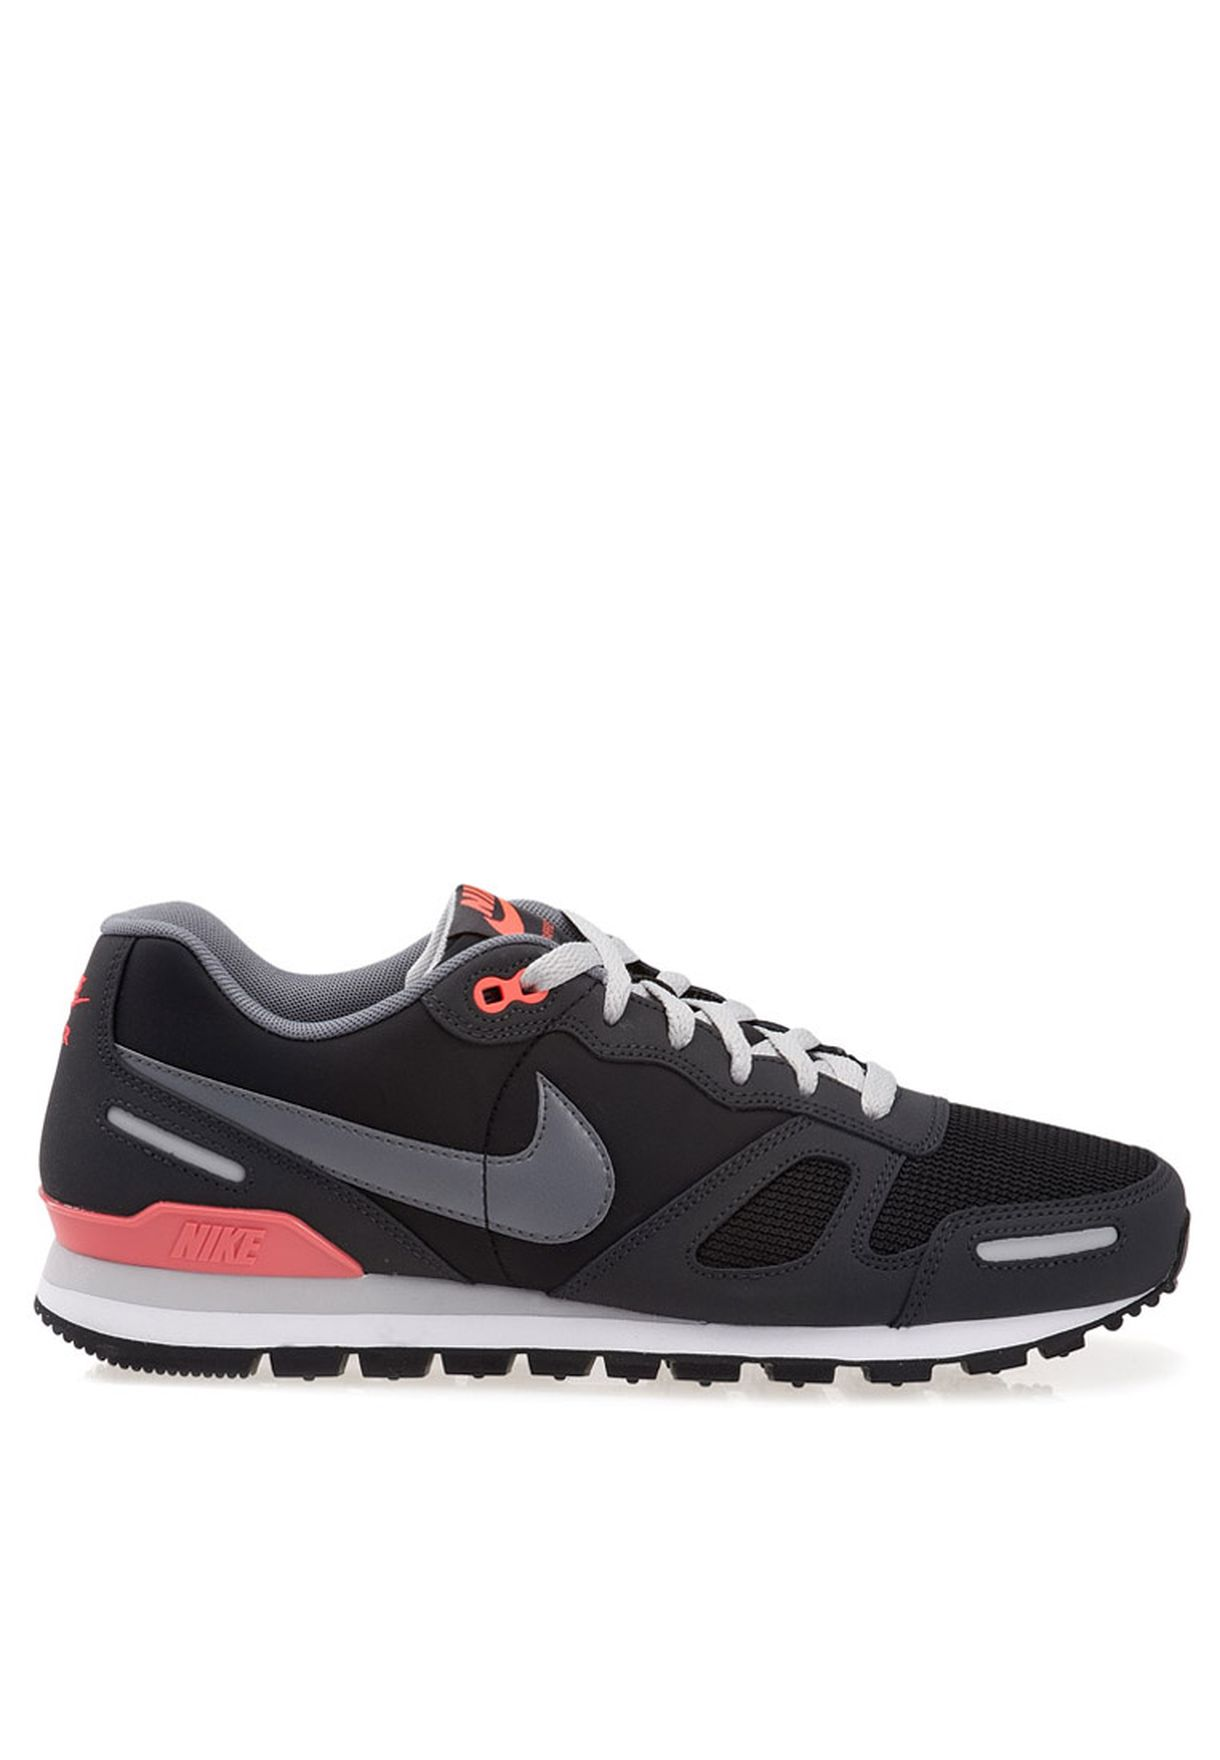 b1ee1af0385a Shop Nike black NIKE AIR WAFFLE TRAINER Sports Shoes 429628 ...